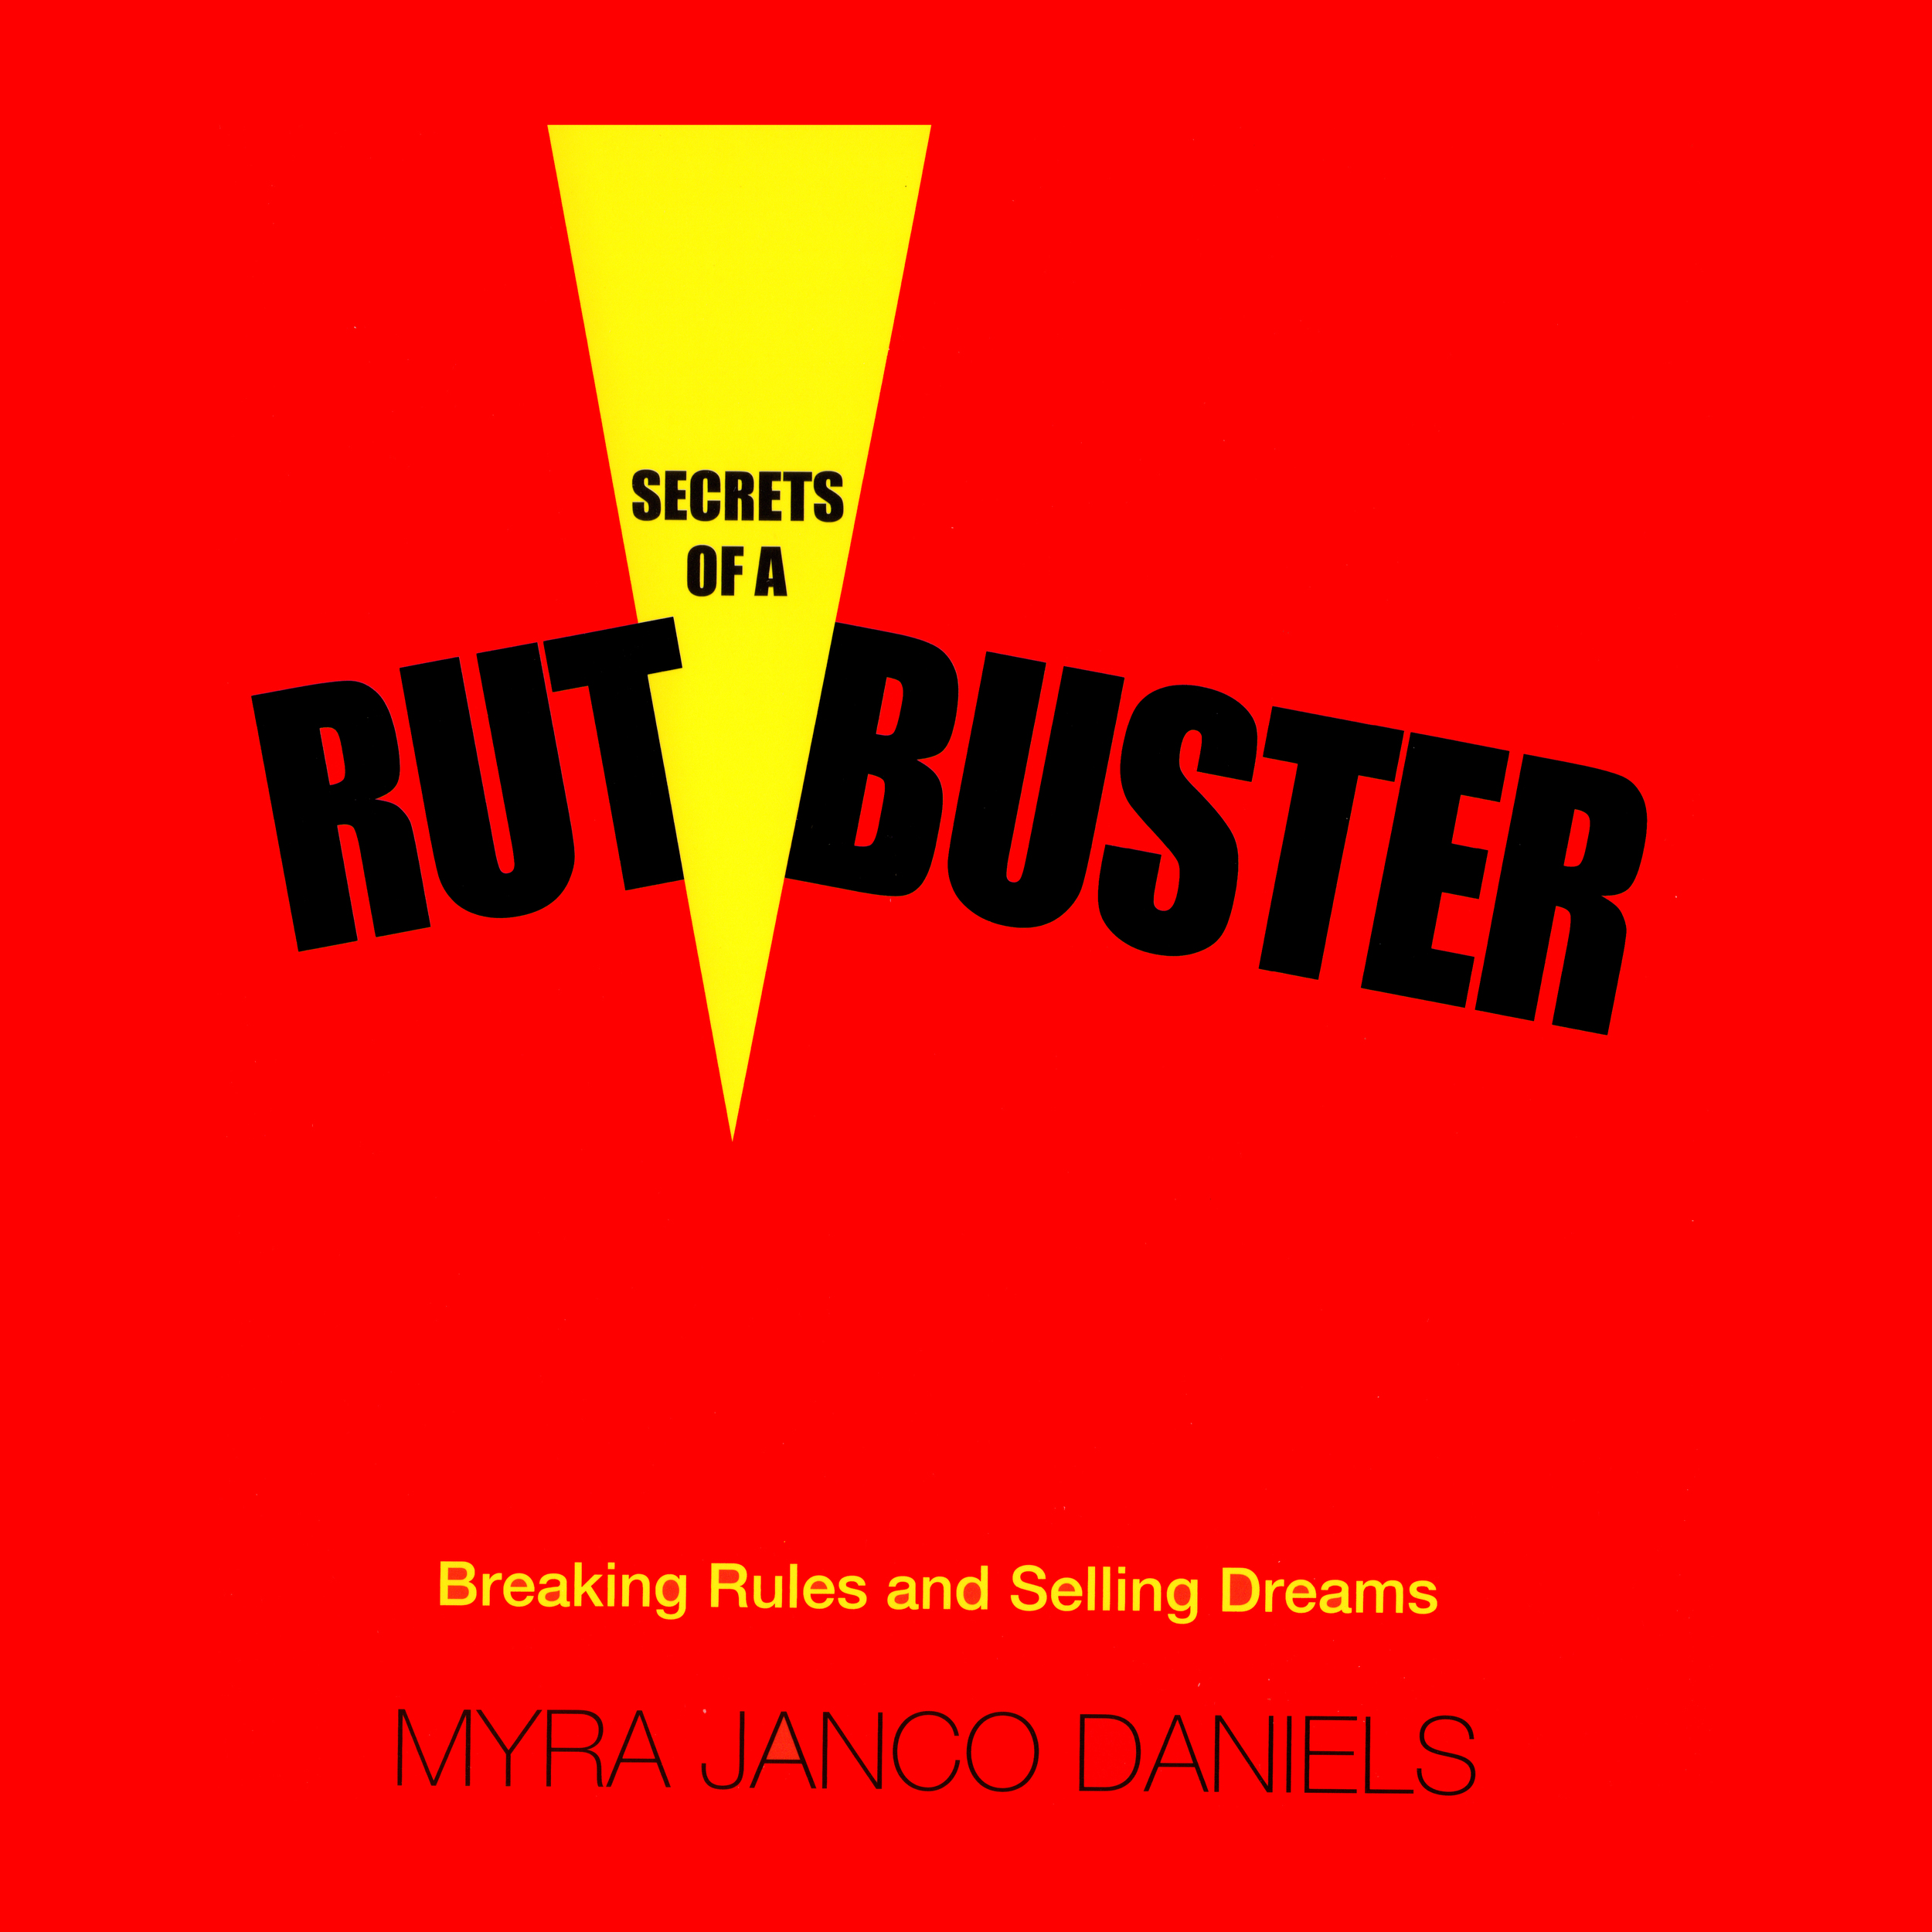 Secrets-of-a-Rustbuster-by-Myra-Janco-Daniels.jpg